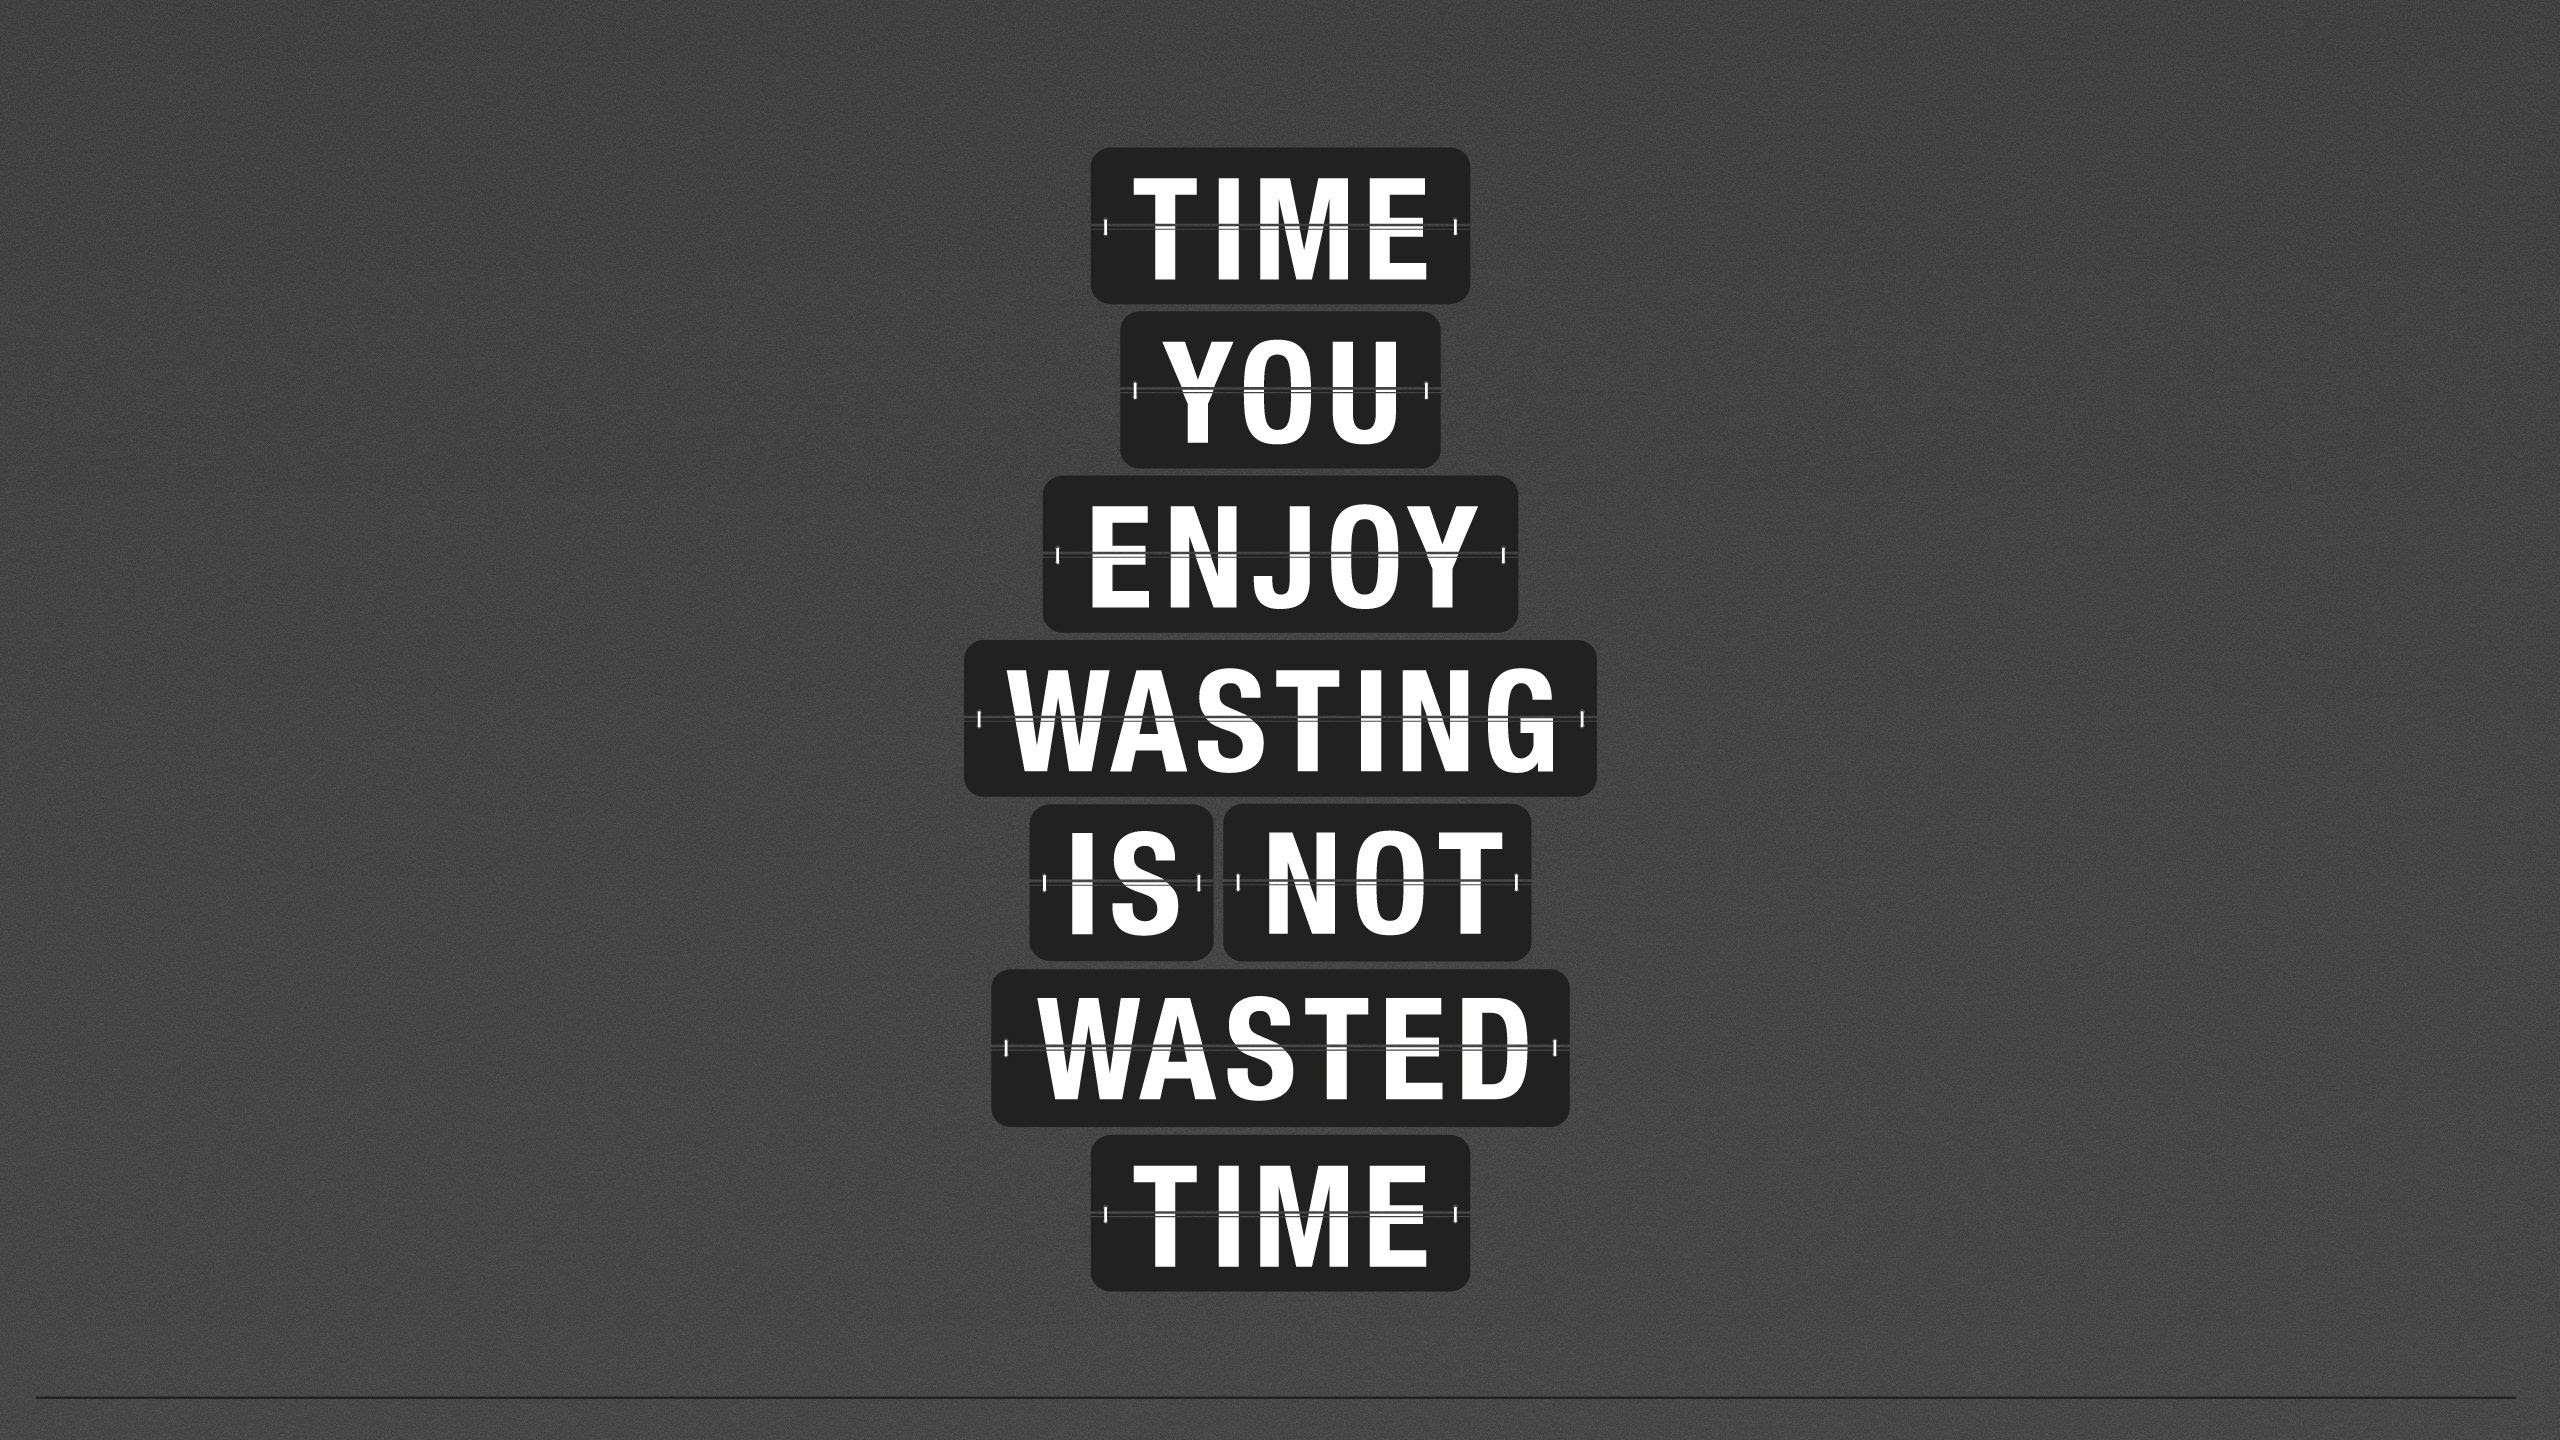 Time You Enjoy Wasting Is Not Wasted Time 2560x1440 One I Like